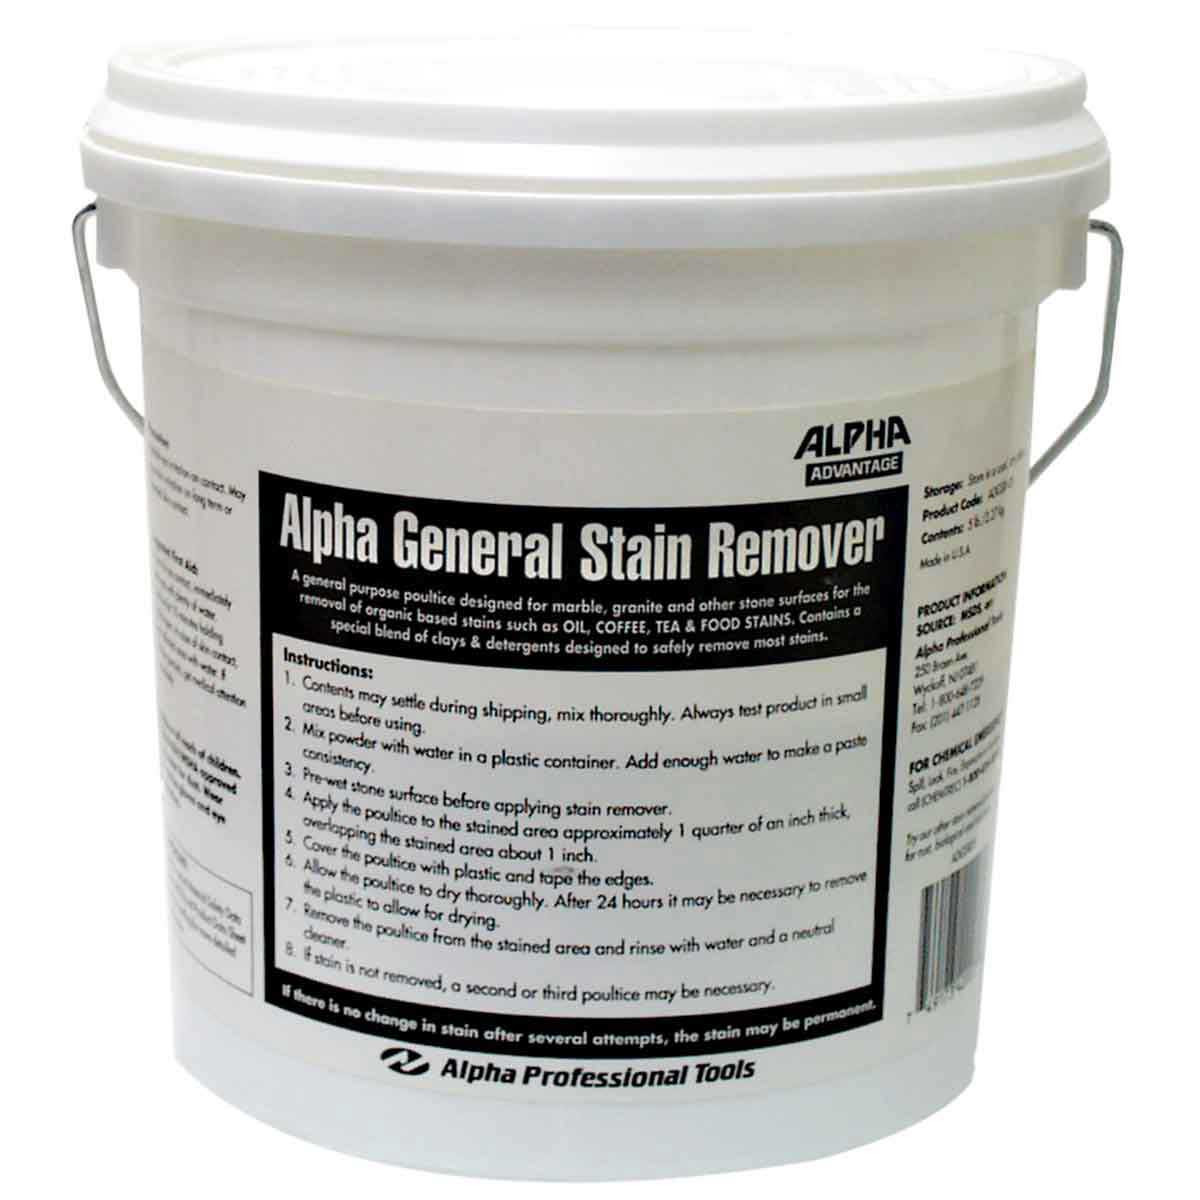 Alpha 5 lb General Stain Remover for Stone